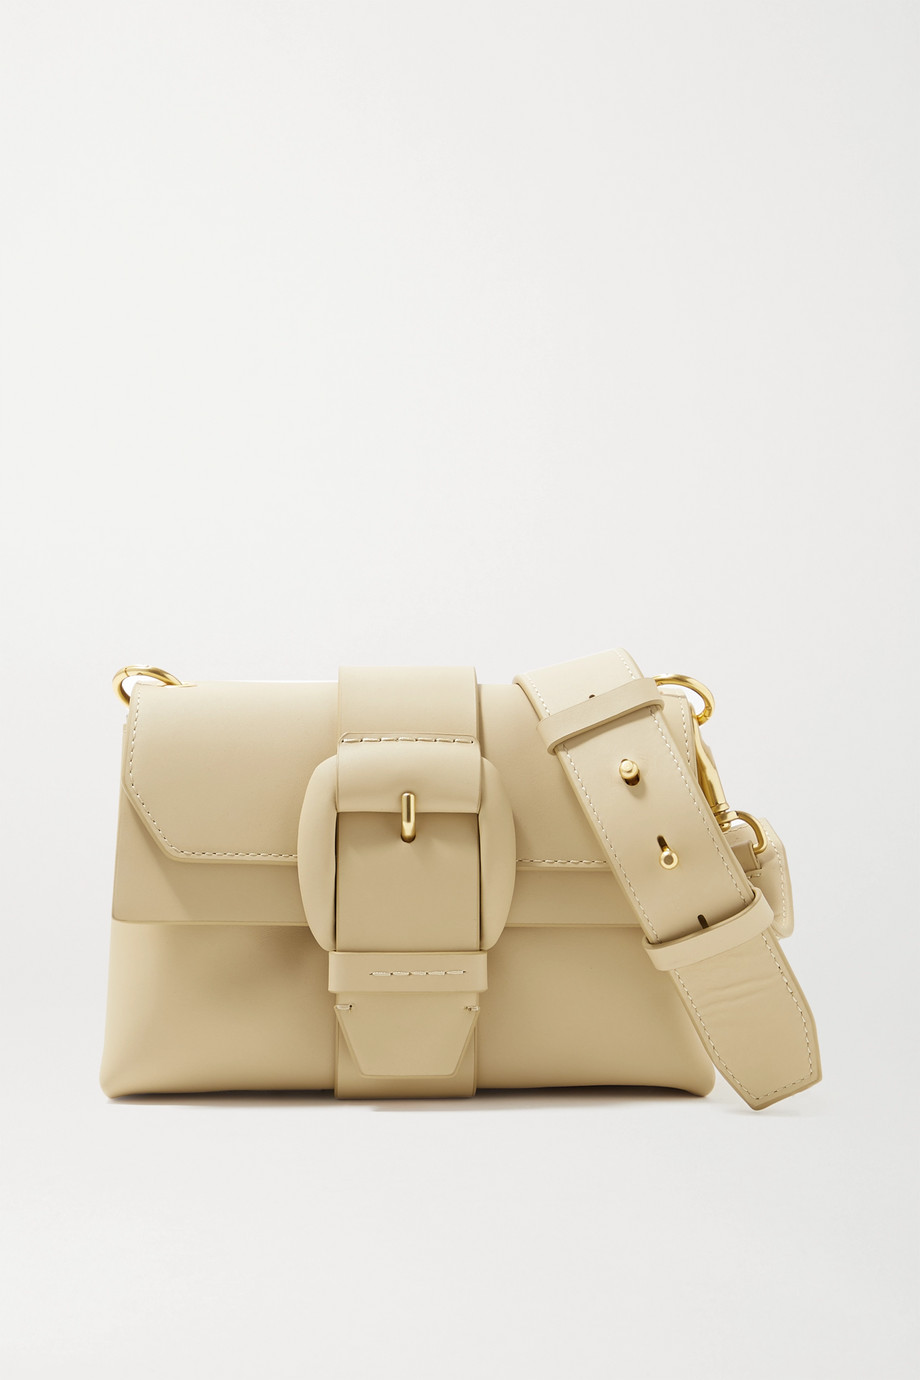 OROTON Frida mini leather shoulder bag